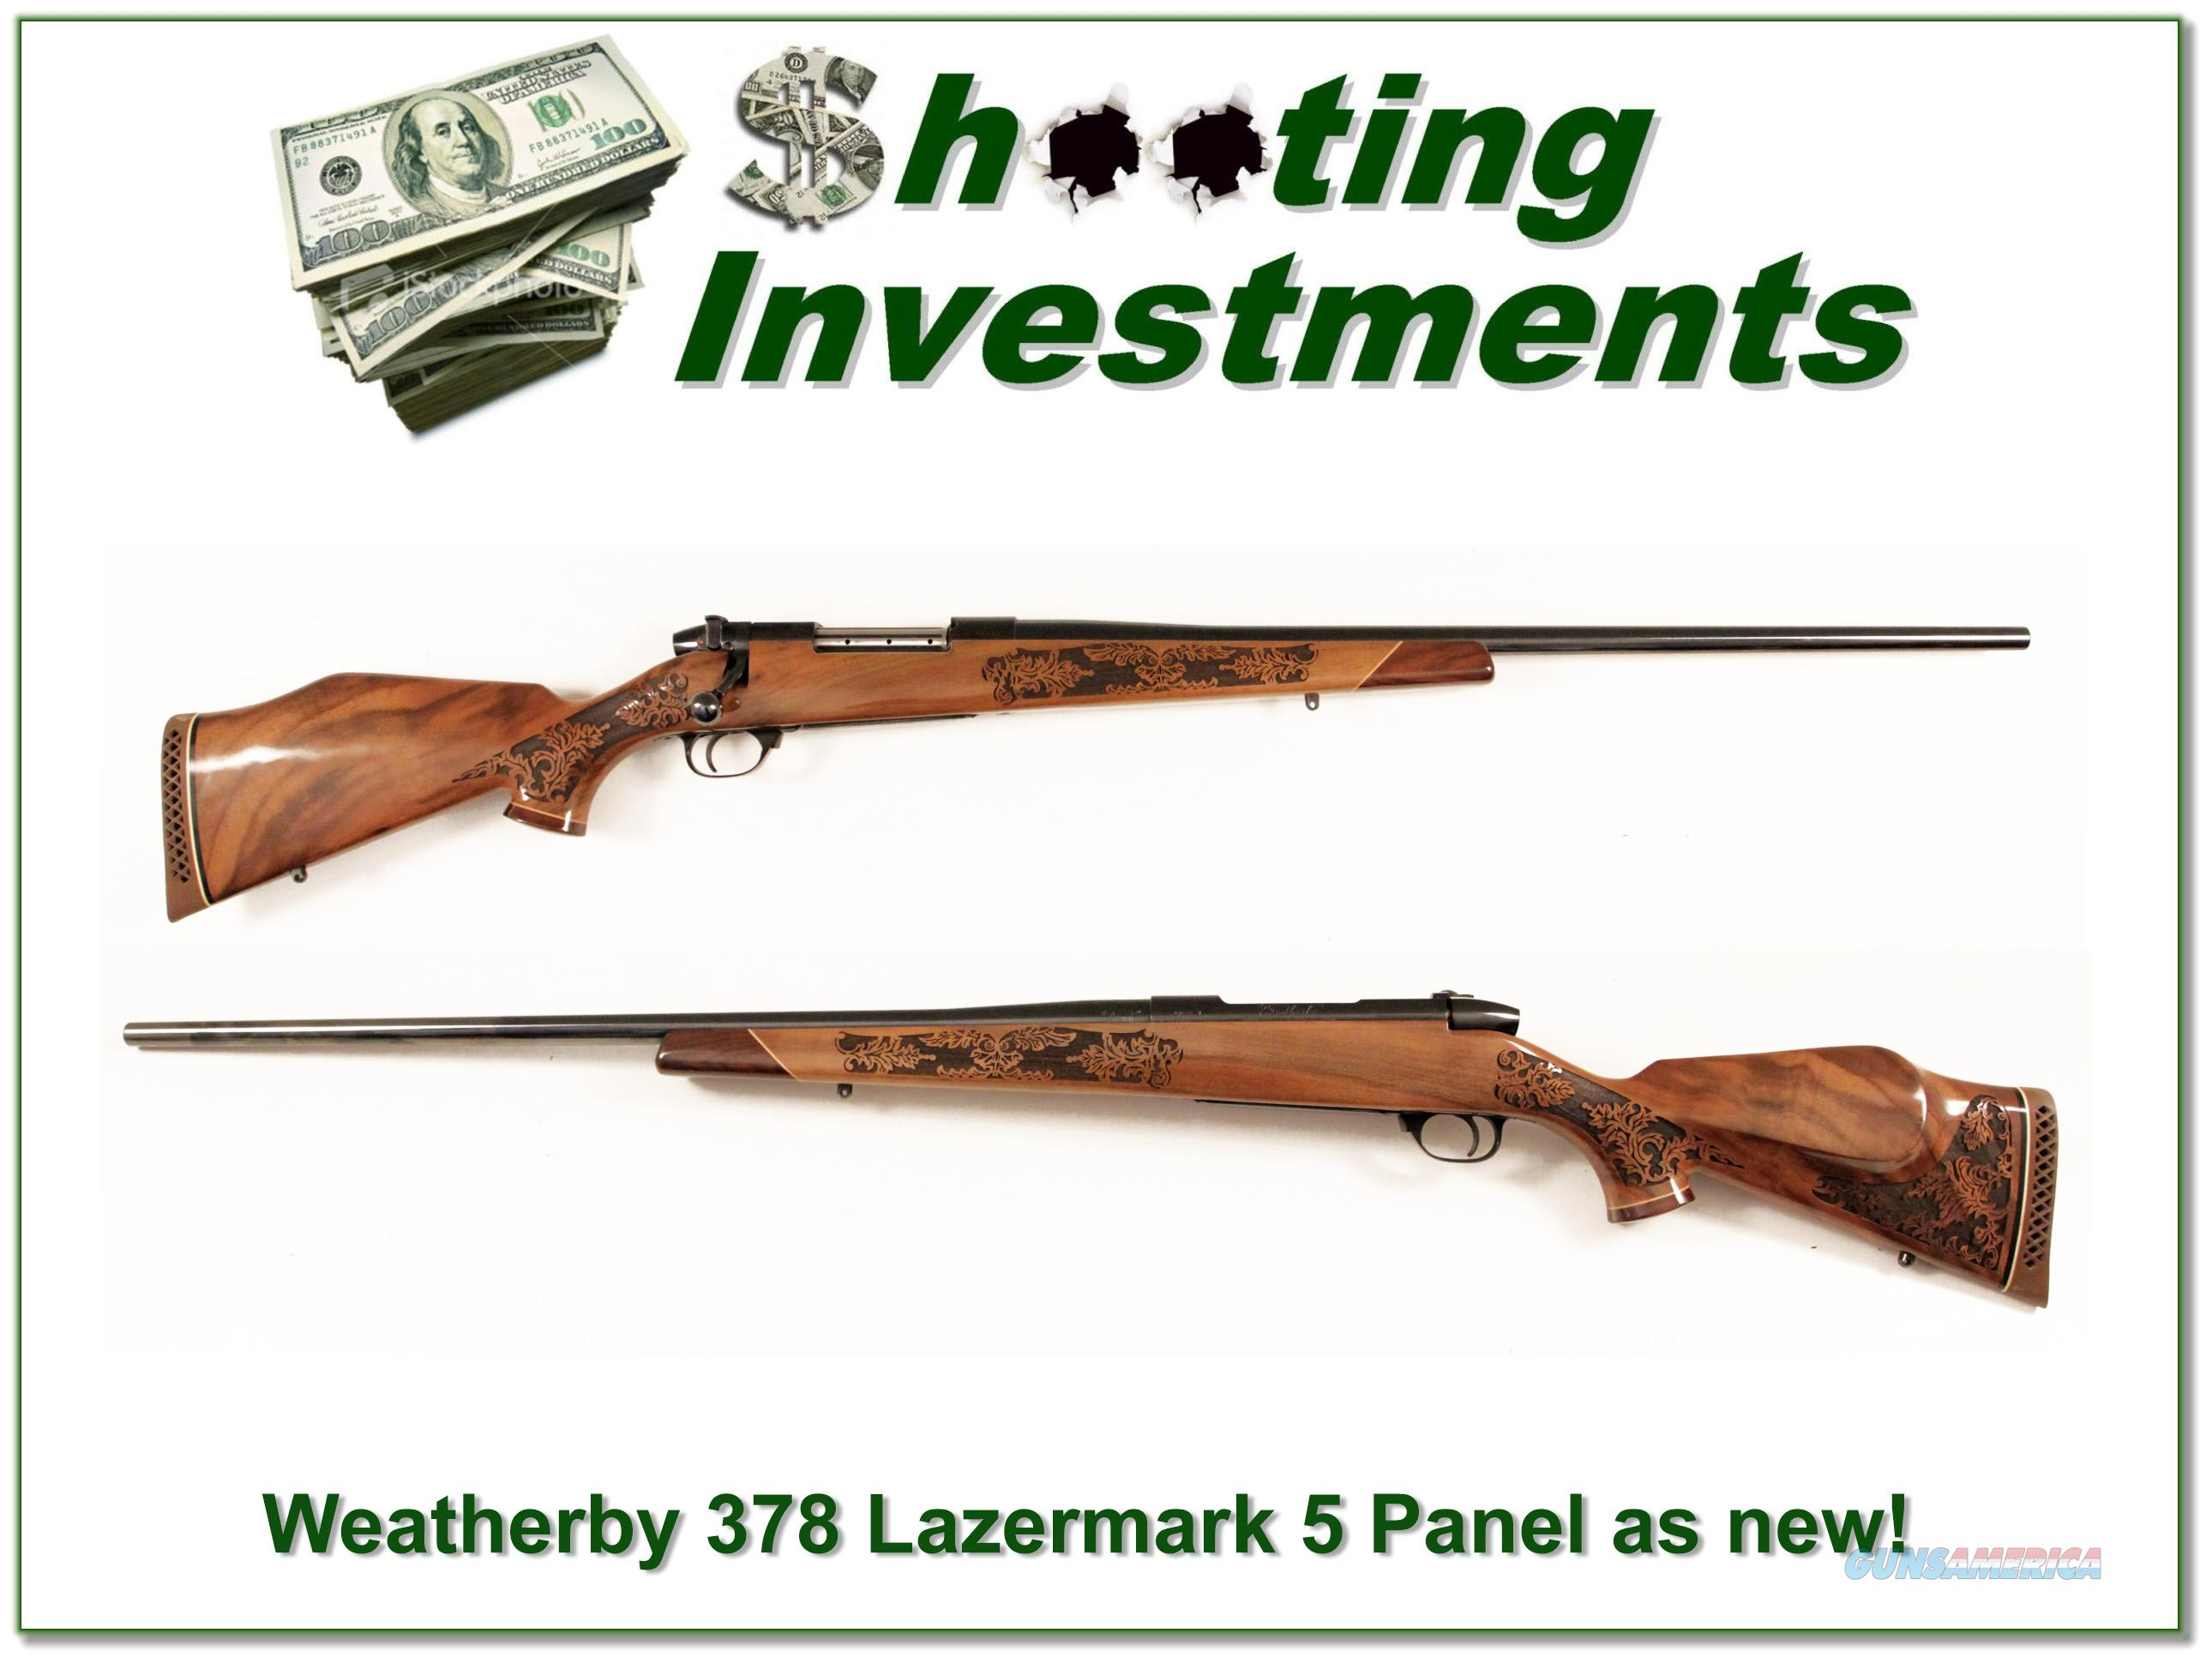 Weatherby Mark V 378 Wthy Lazermark 5 Panel as new  Guns > Rifles > Weatherby Rifles > Sporting